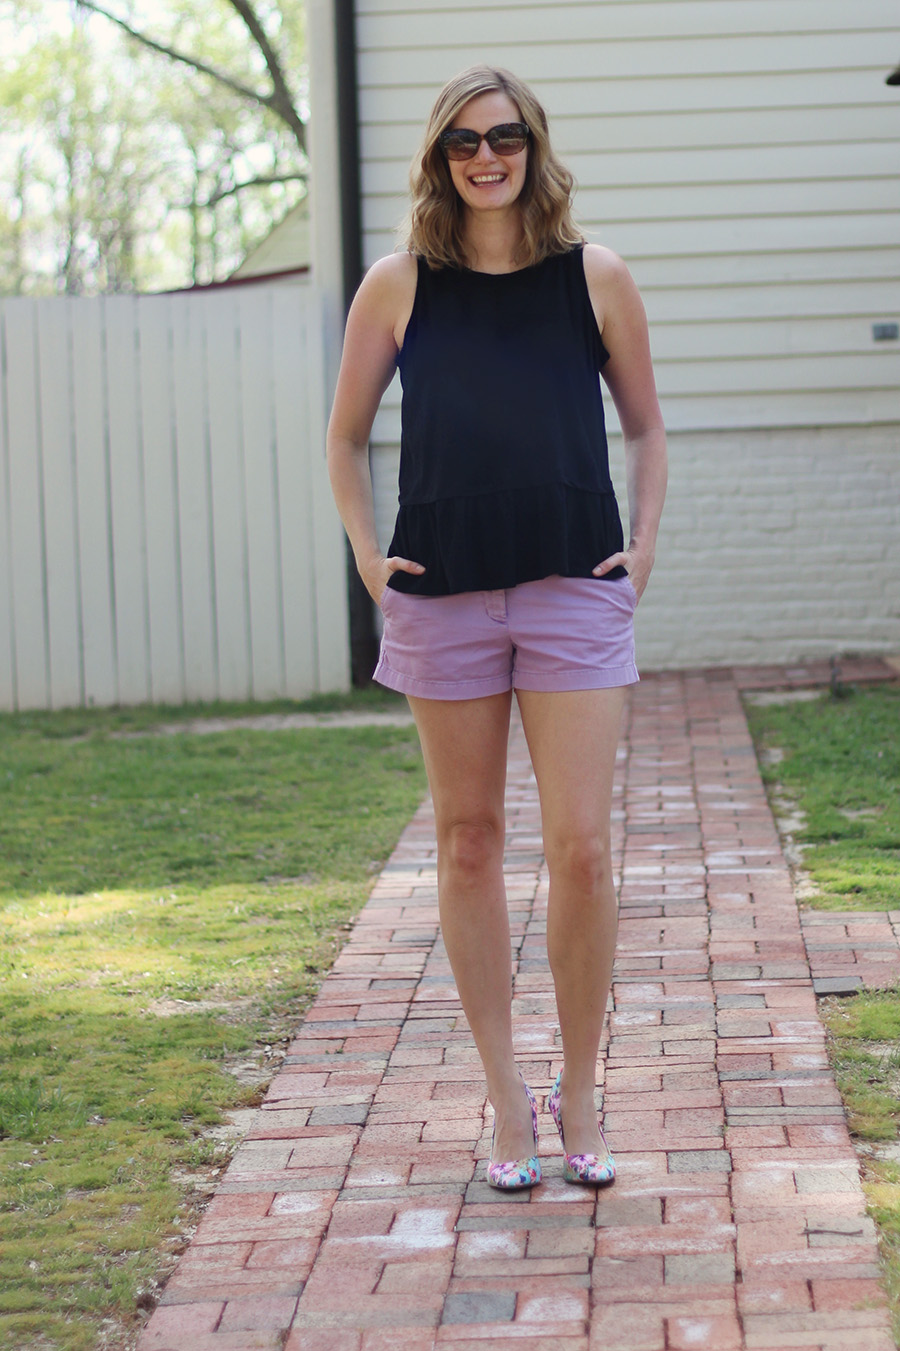 ac66bc740cc Old Navy Peplum Top Two Ways to Wear It!